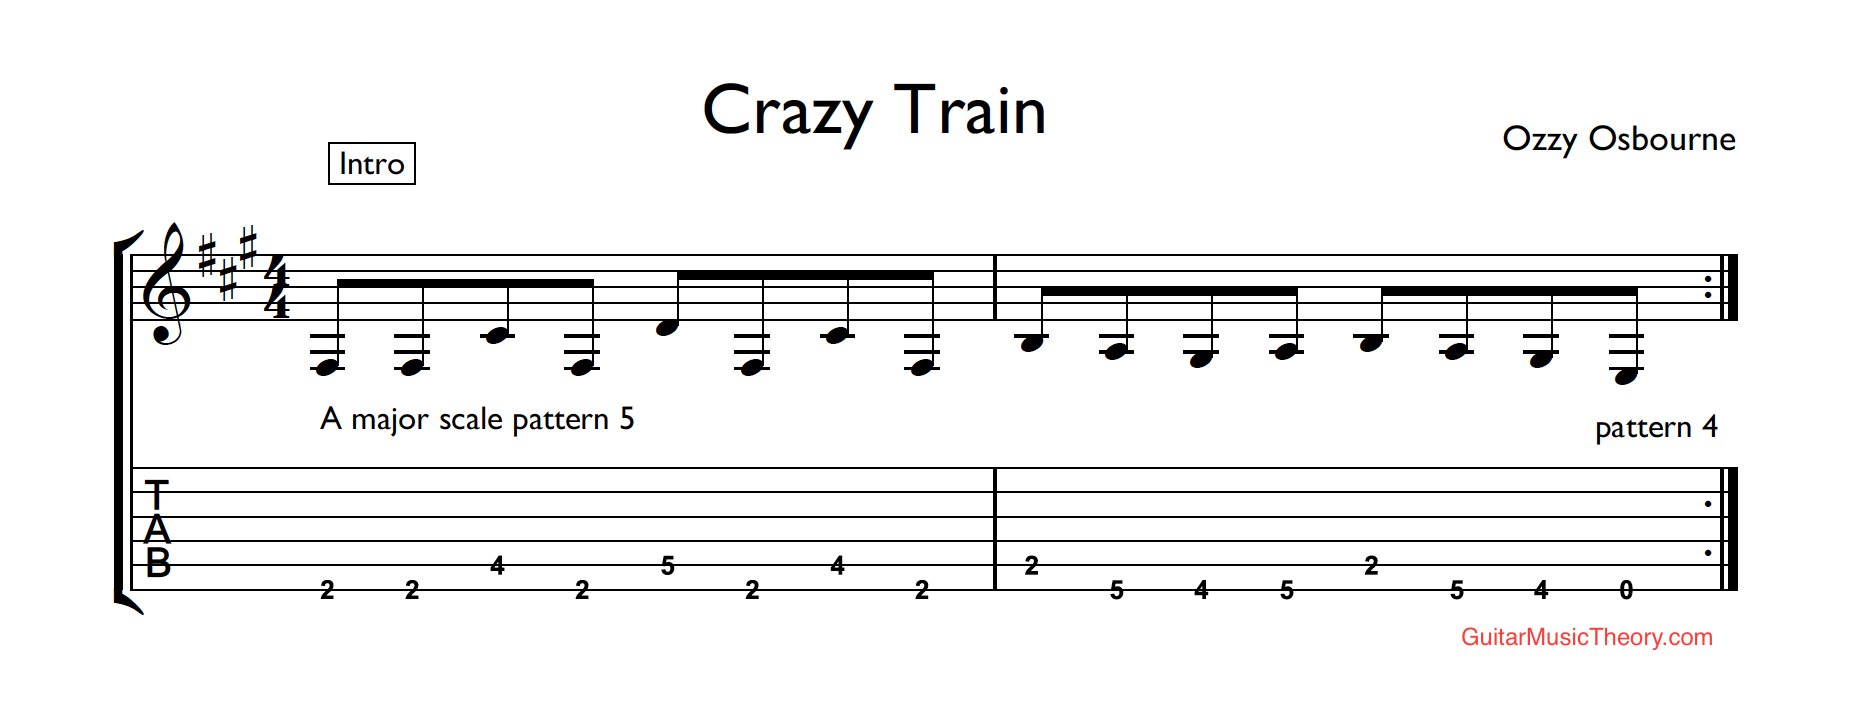 How To Play Crazy Train Tabs A Major Scale Guitar Guitar Music